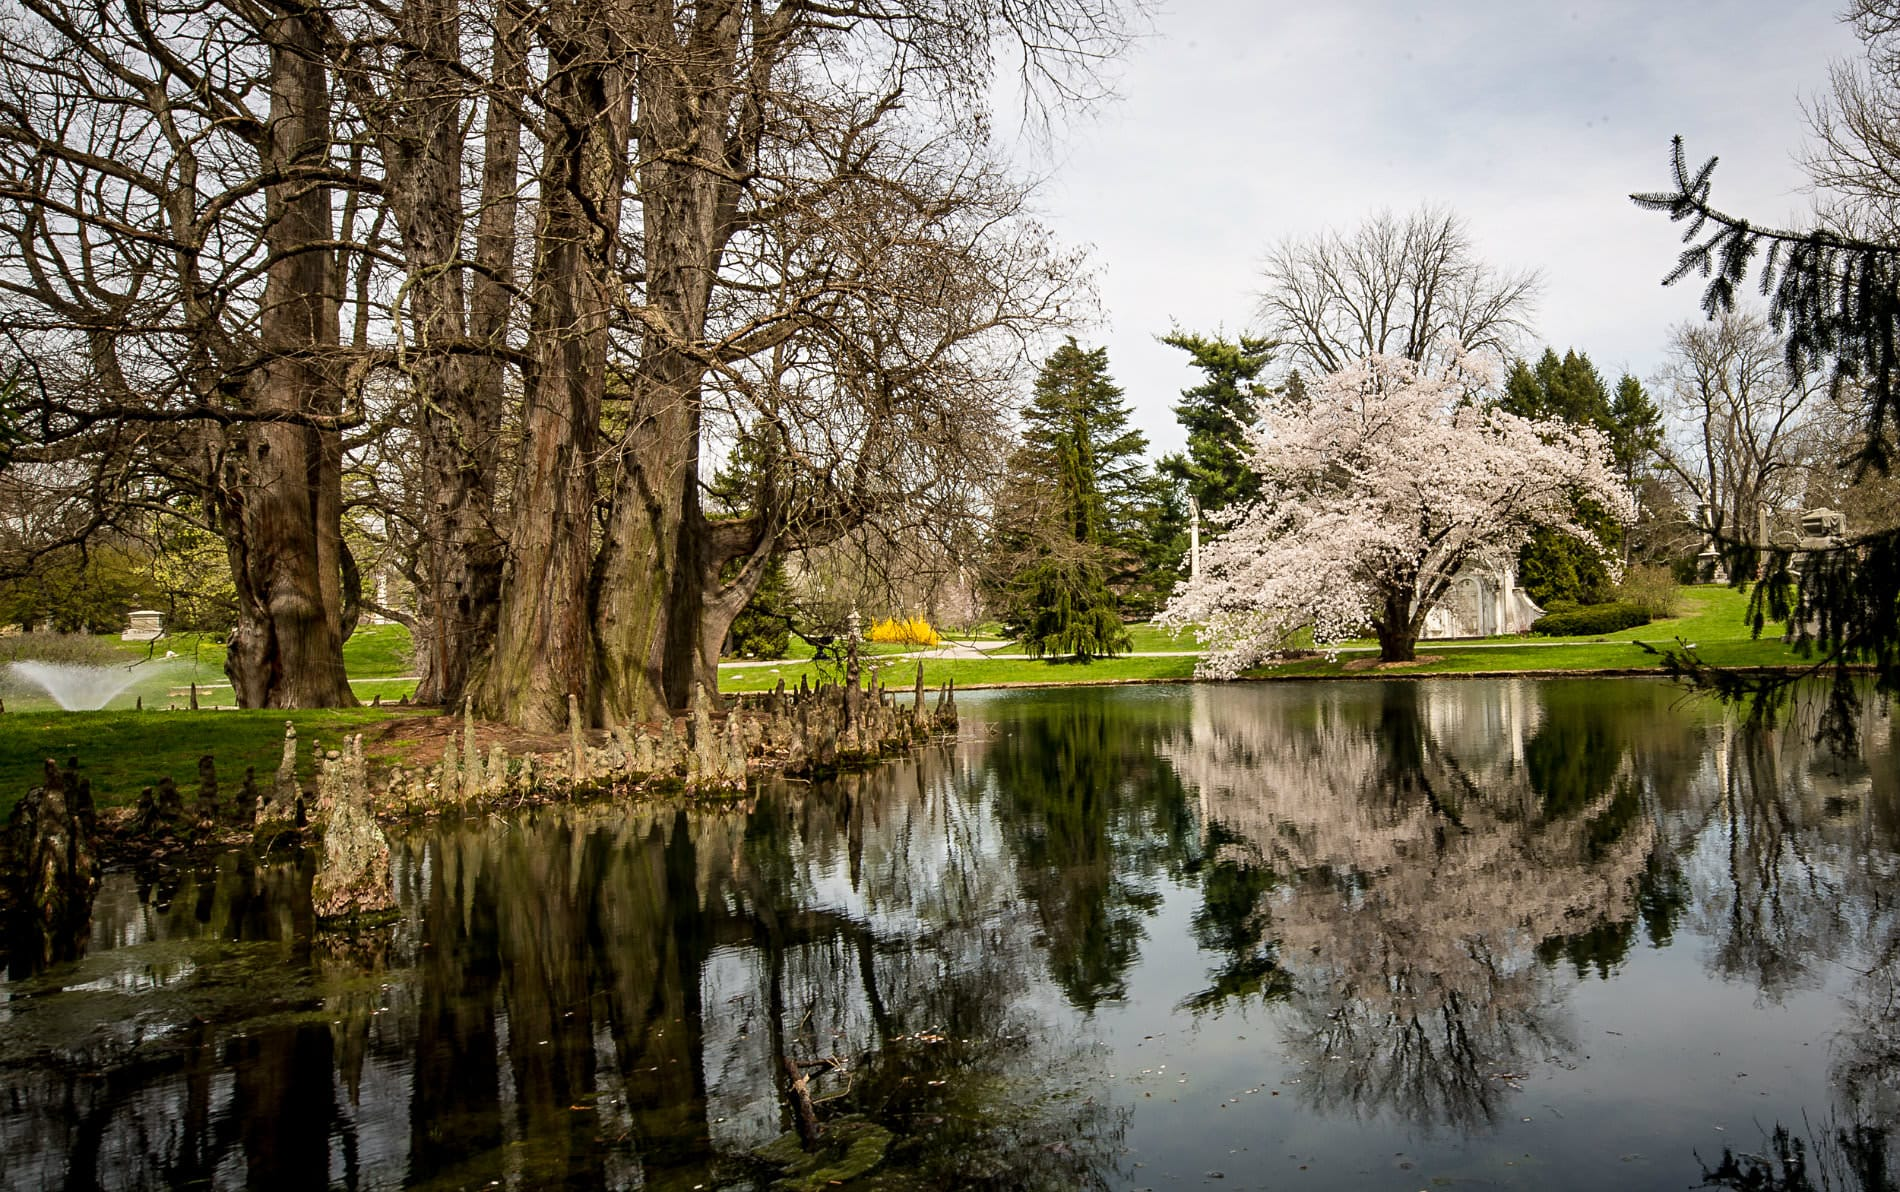 Lake in a park reflecting leafless trees, tall green pine trees and white flowering trees